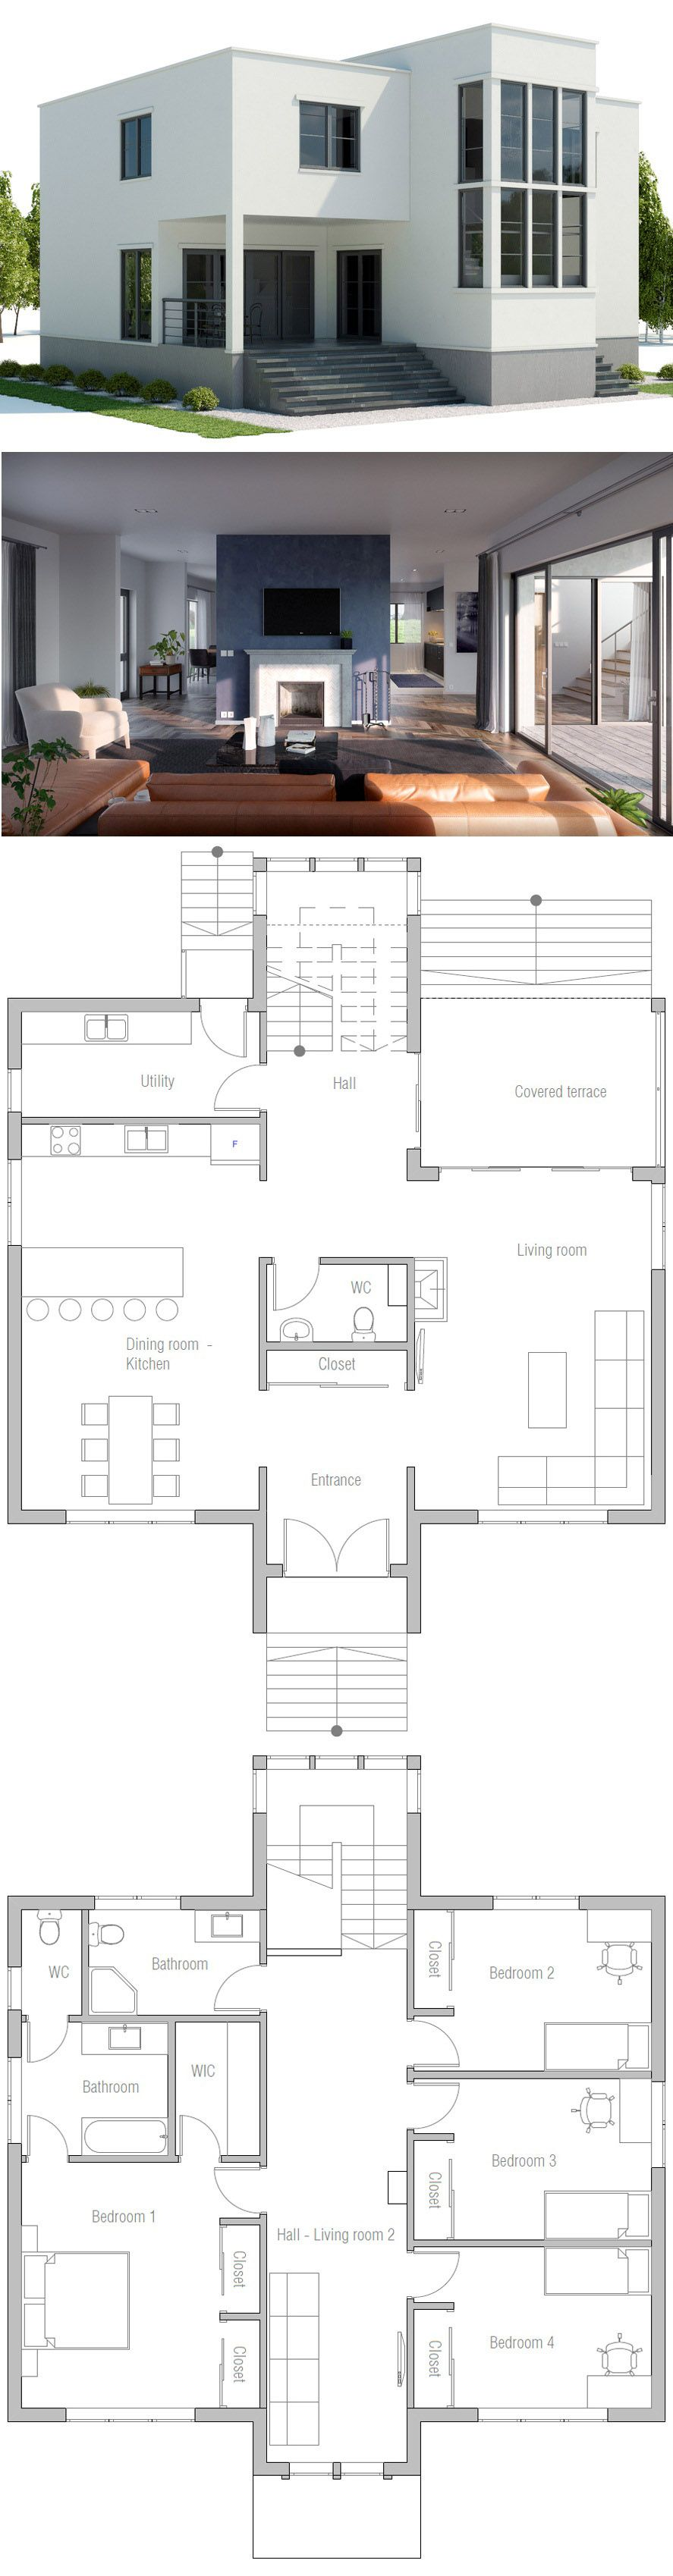 House Designs Home Plans Architecture House Architecture Modern Architecture House House Plans Architecture House